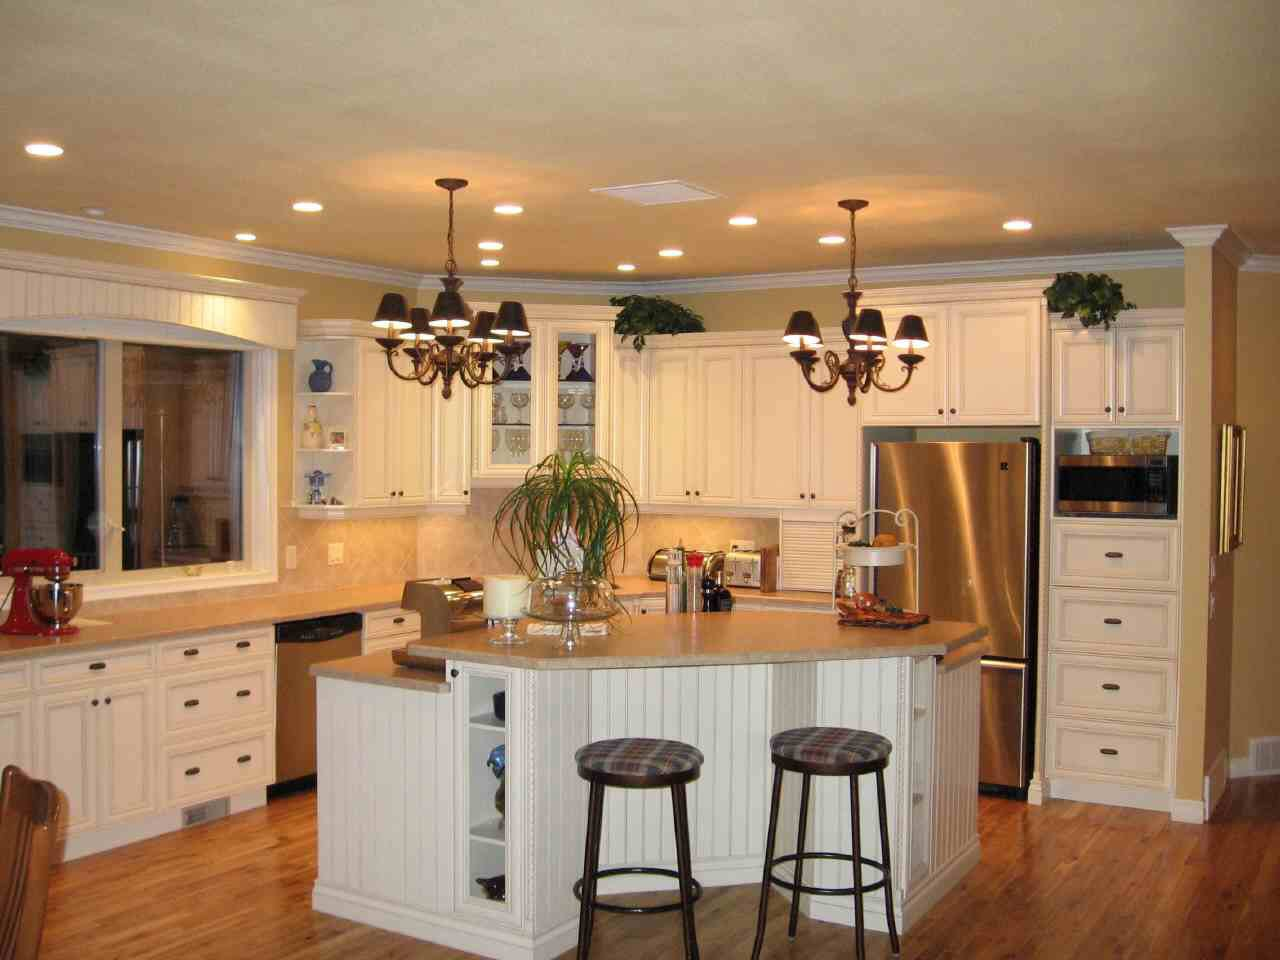 Magnificent Kitchen Island Design Ideas for Small Kitchens 1280 x 960 · 109 kB · jpeg